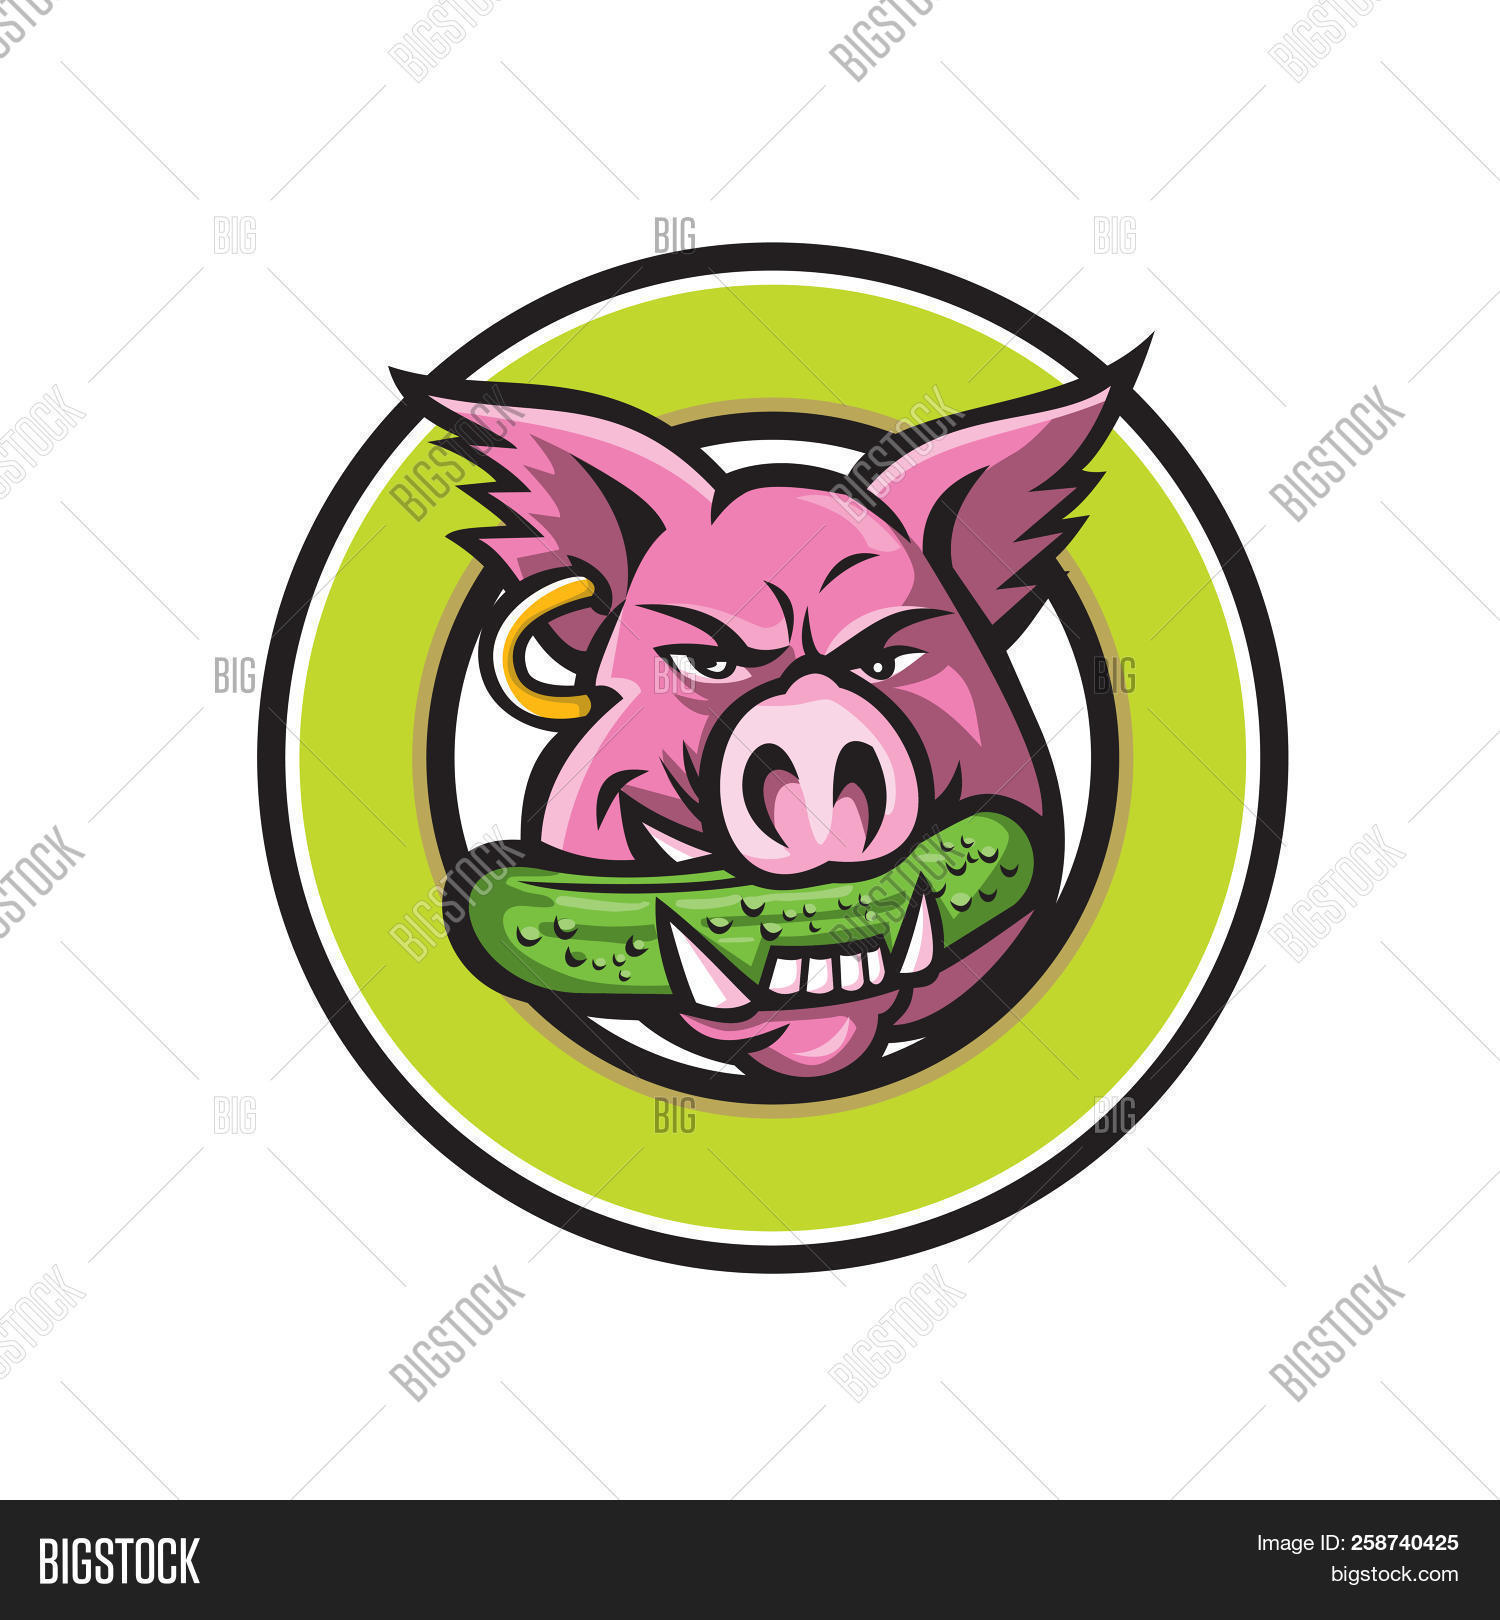 artwork,biting,boar,brand,cartoon,character,cucumber,gherkin,graphic,head,hog,icon,identity,illustration,logo,mascot,pickle,pickled,pig,retro,school,sign,sporting,sports,symbol,team,tusk,wild